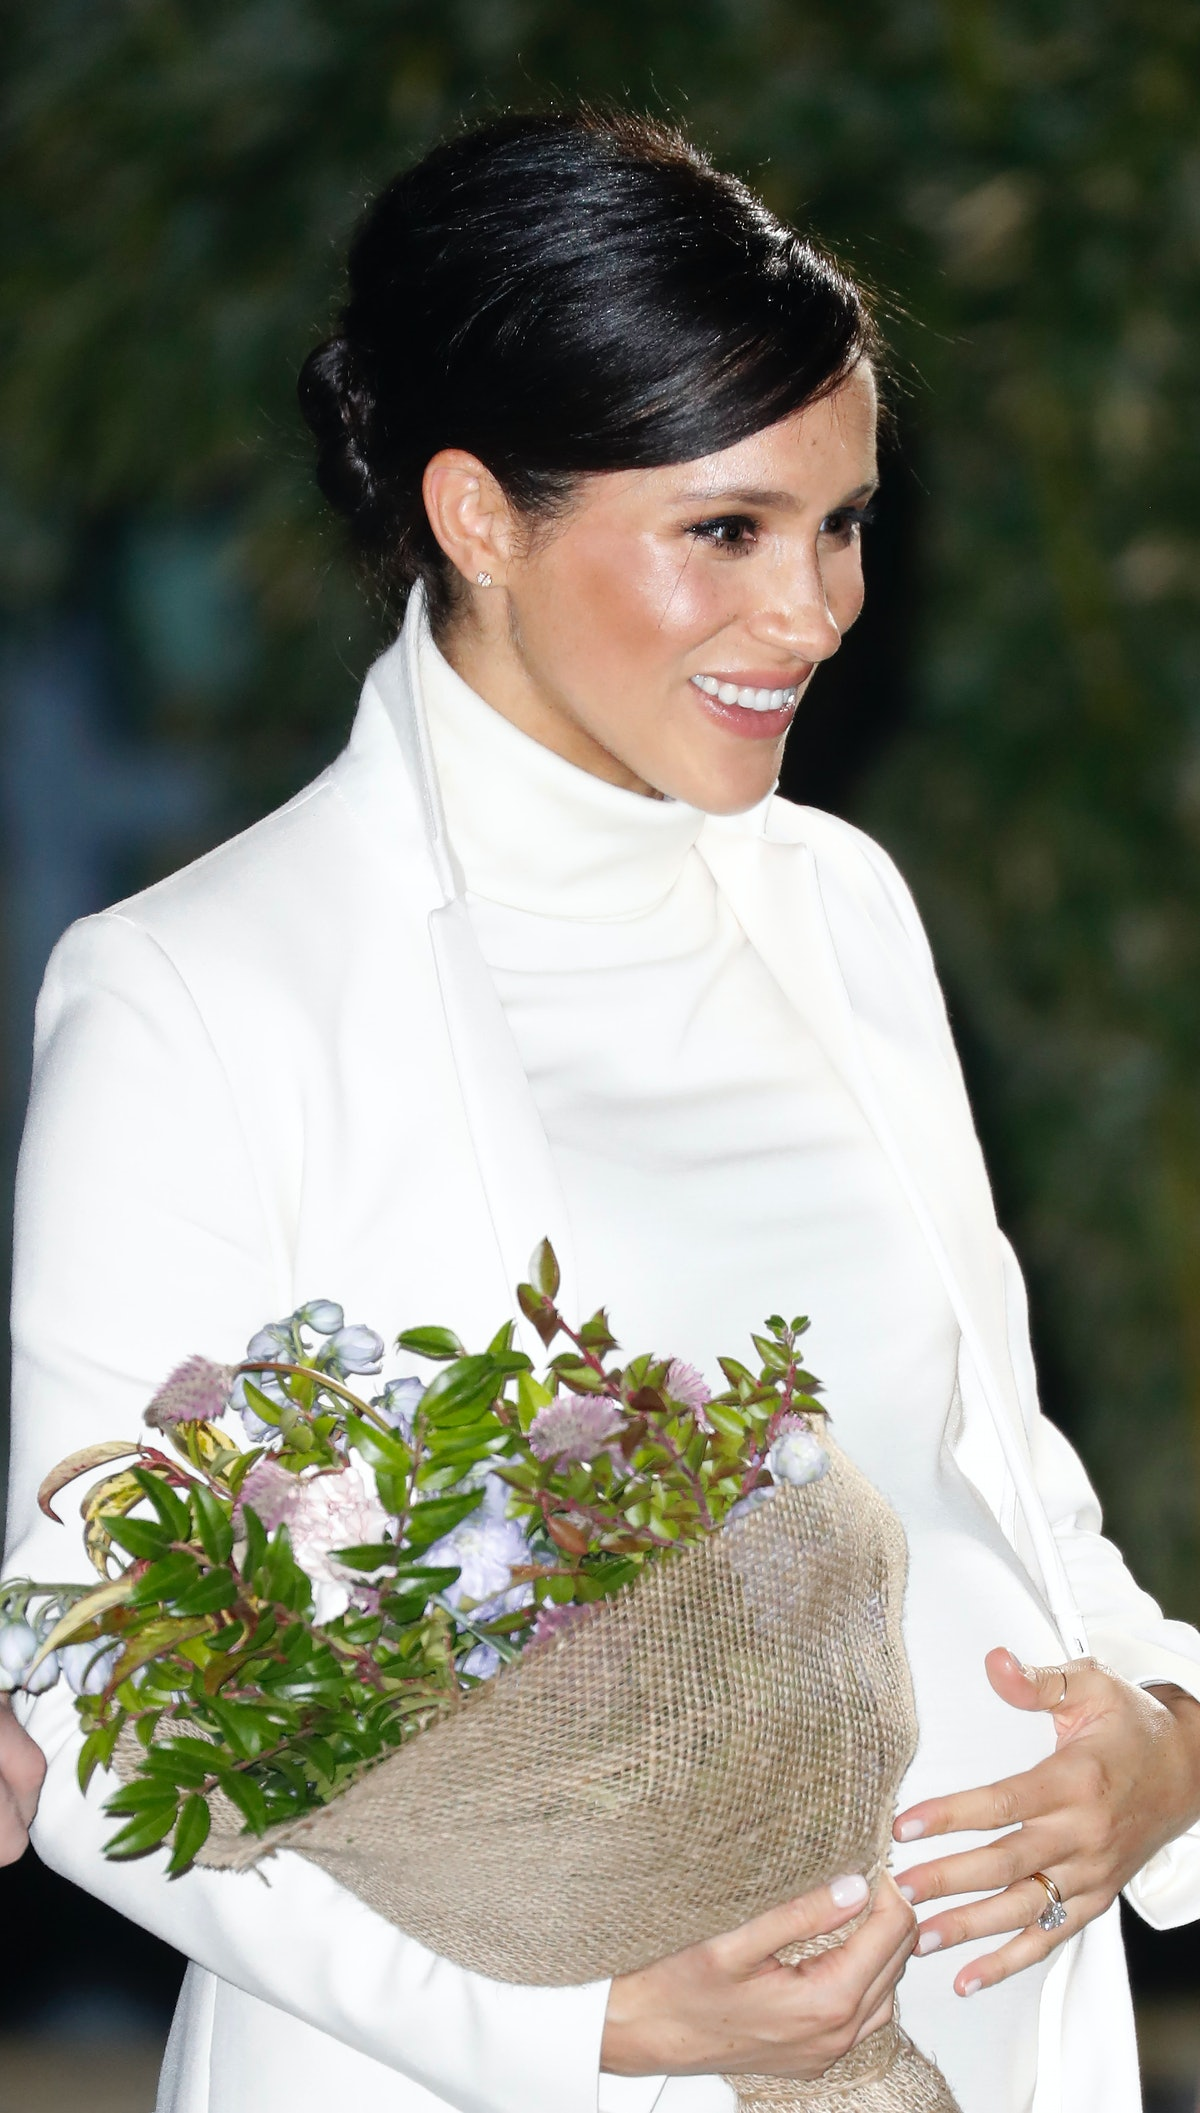 Everything We Know About Meghan Markle's Reported Baby Shower In NYC